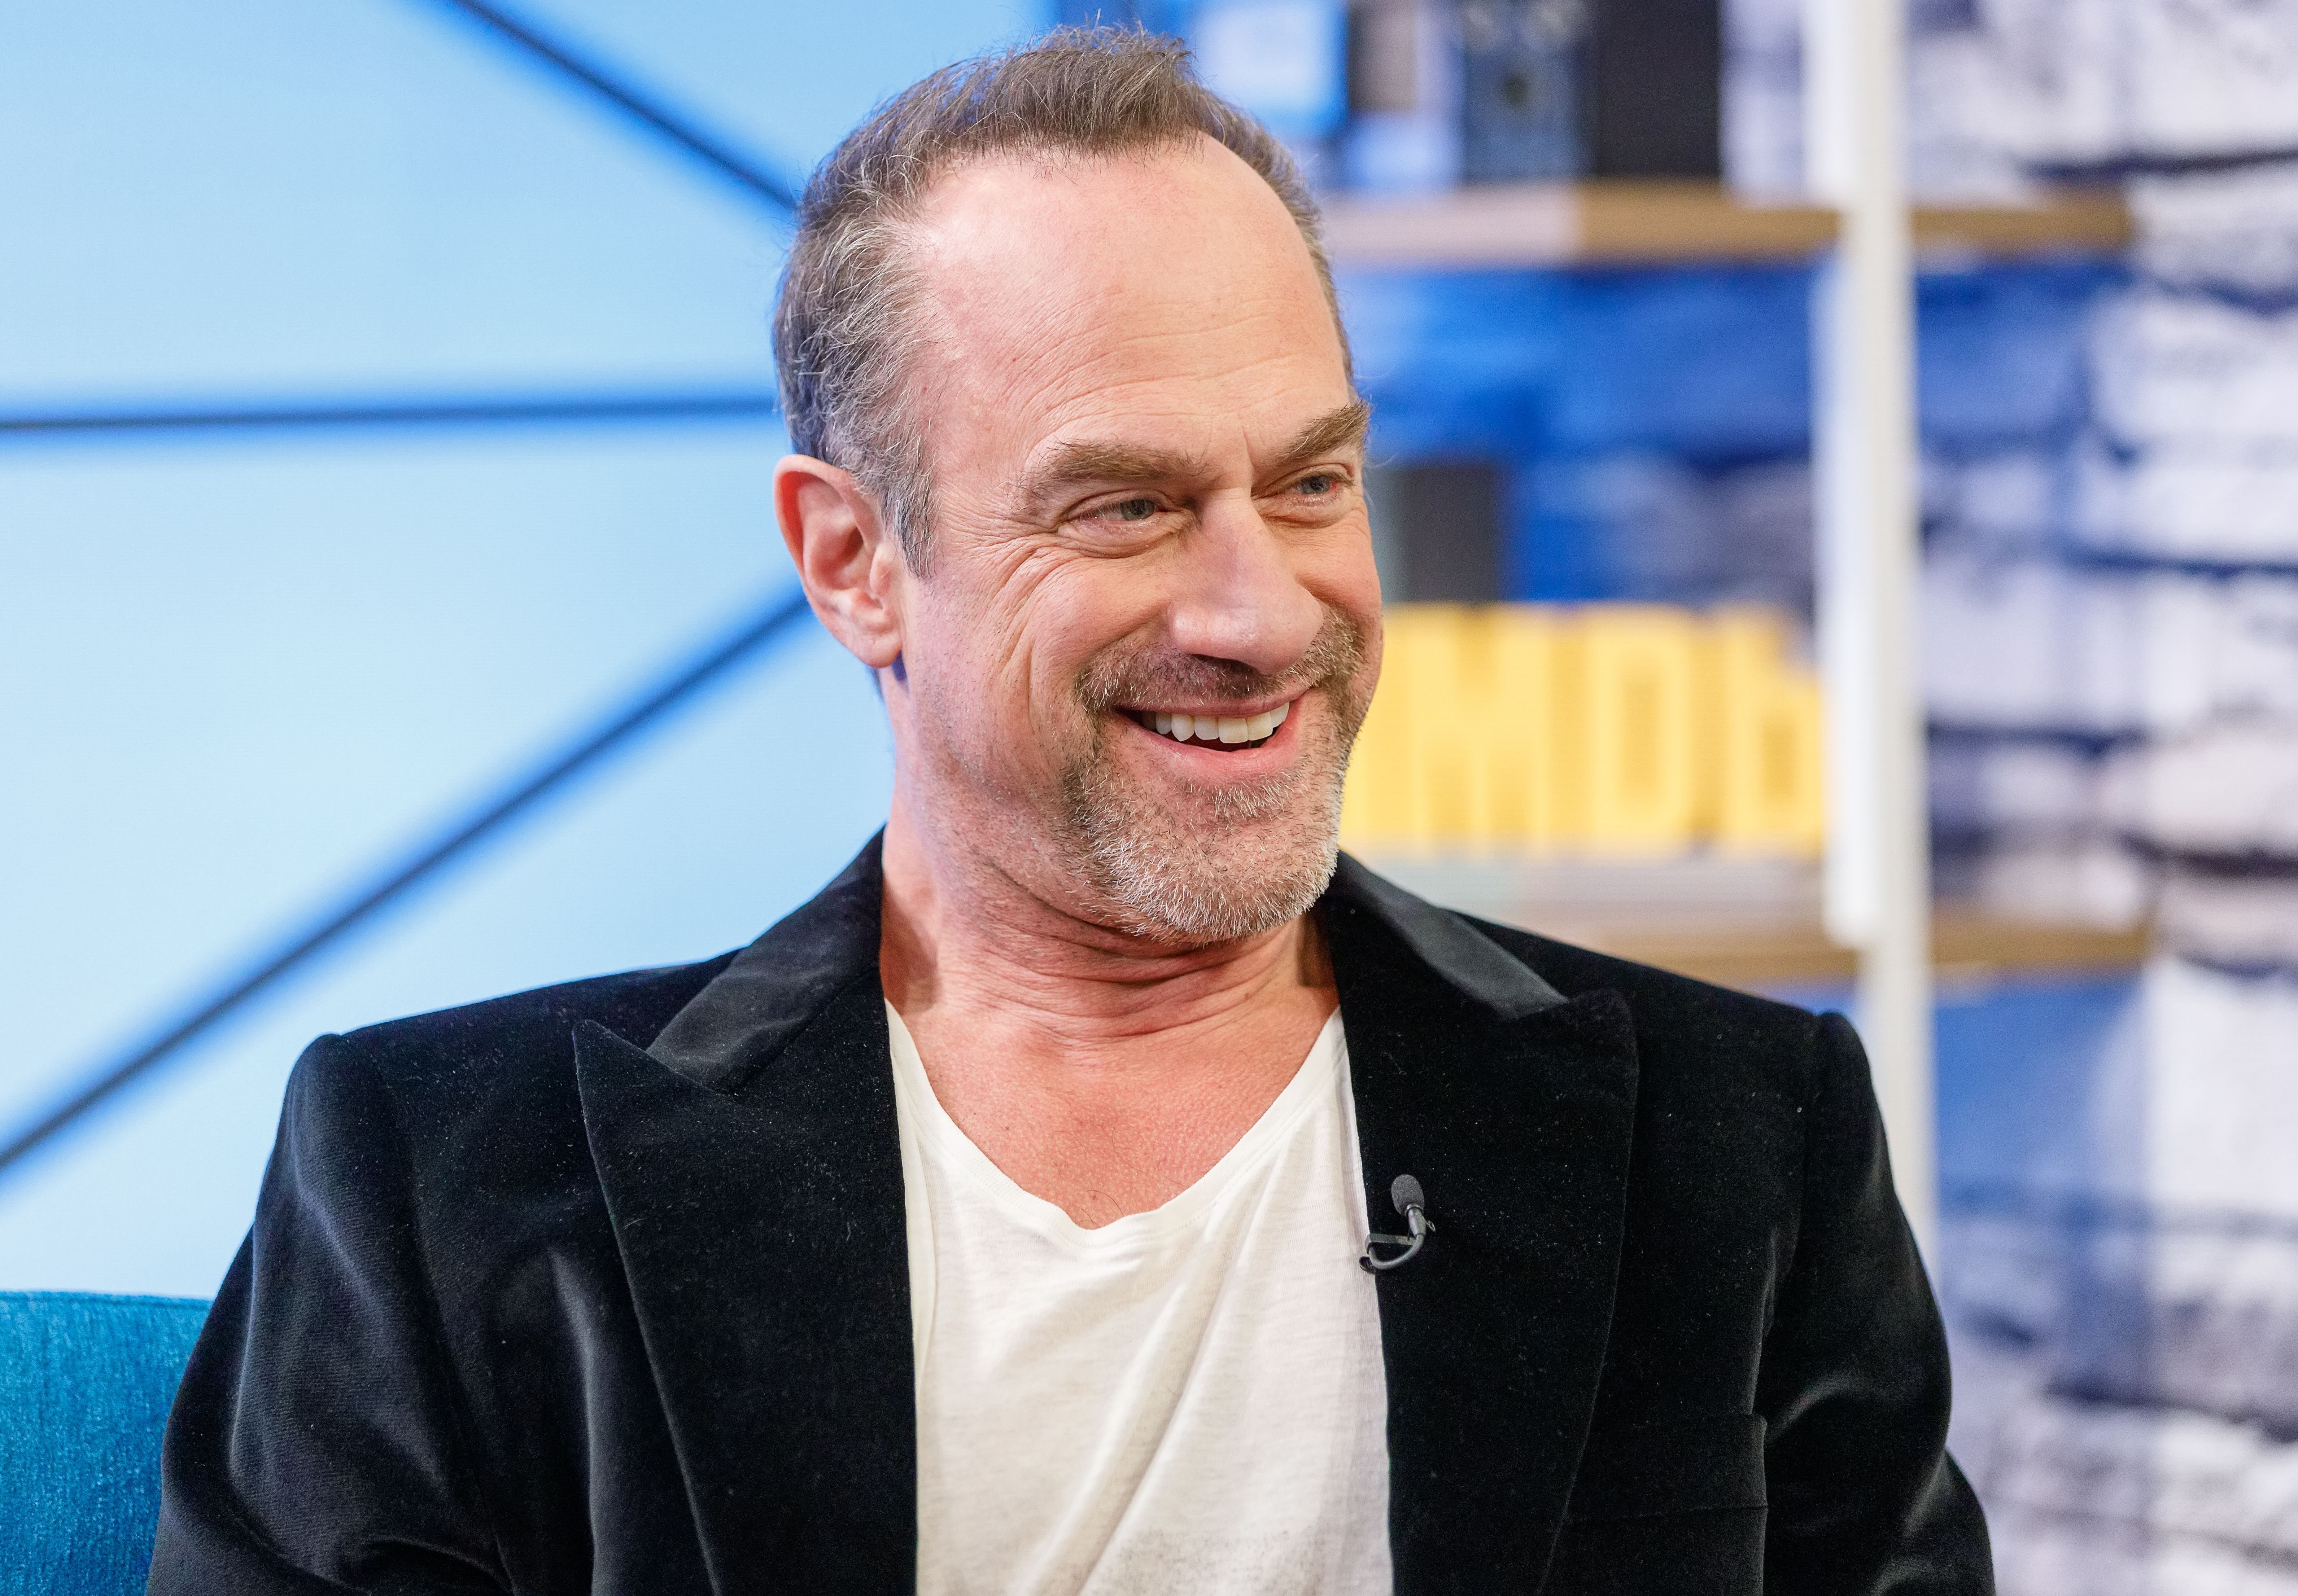 Christopher Meloni at 'The IMDb Show' episode of 'The IMDb Show' airs on April 25, 2019 | Photo: Getty Images